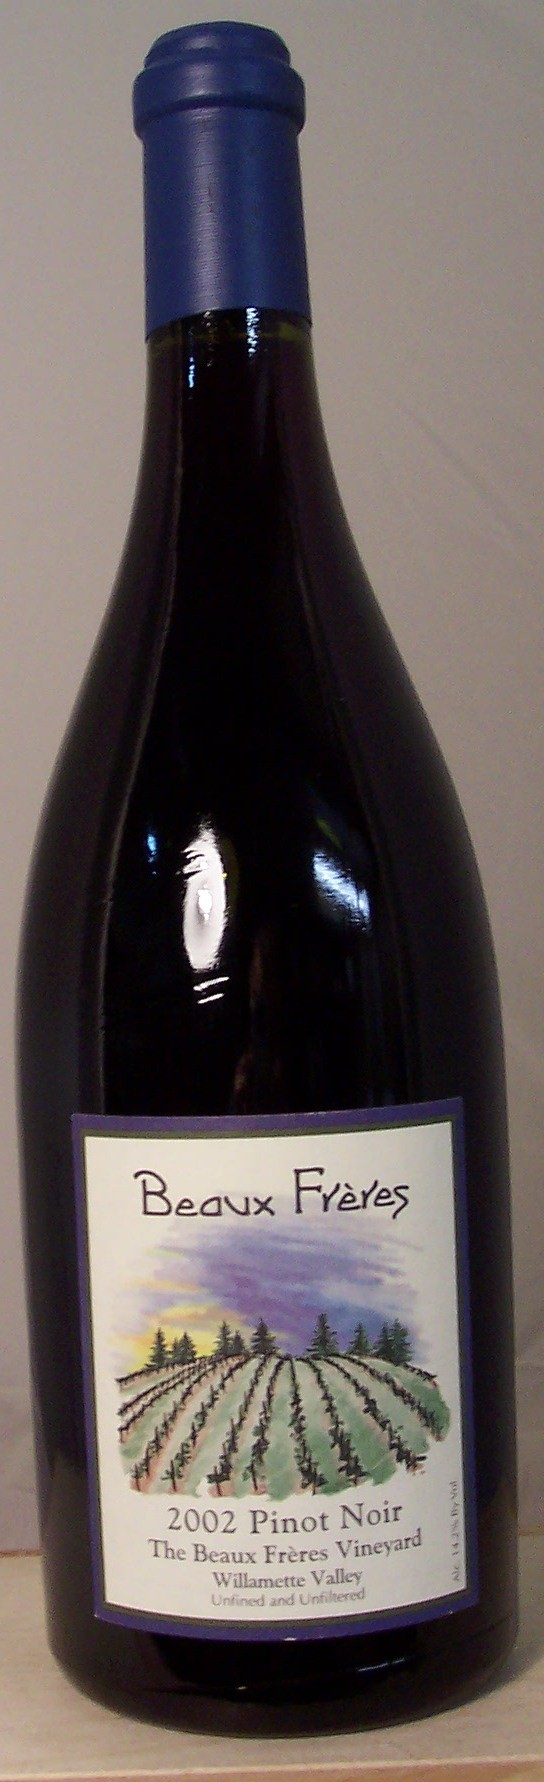 Beaux Freres Pinot Noir The Beaux Freres Vineyard Willamette Valley 2002